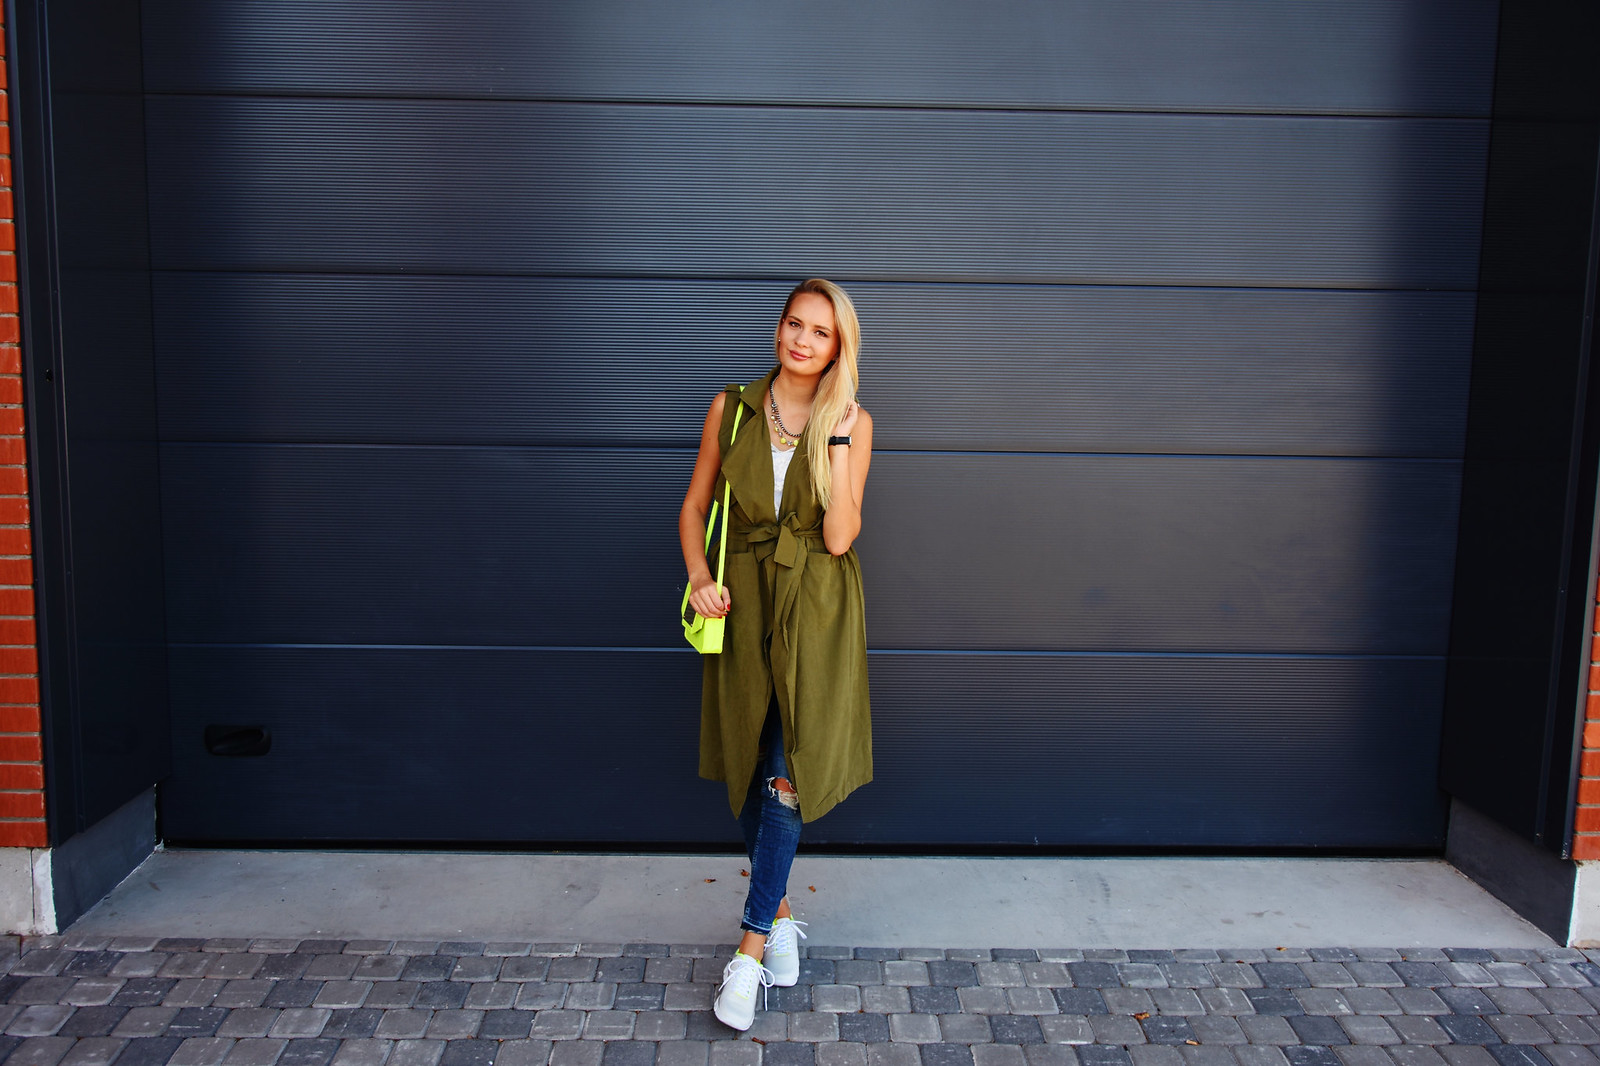 Latvian fashion and lifestyle blogger